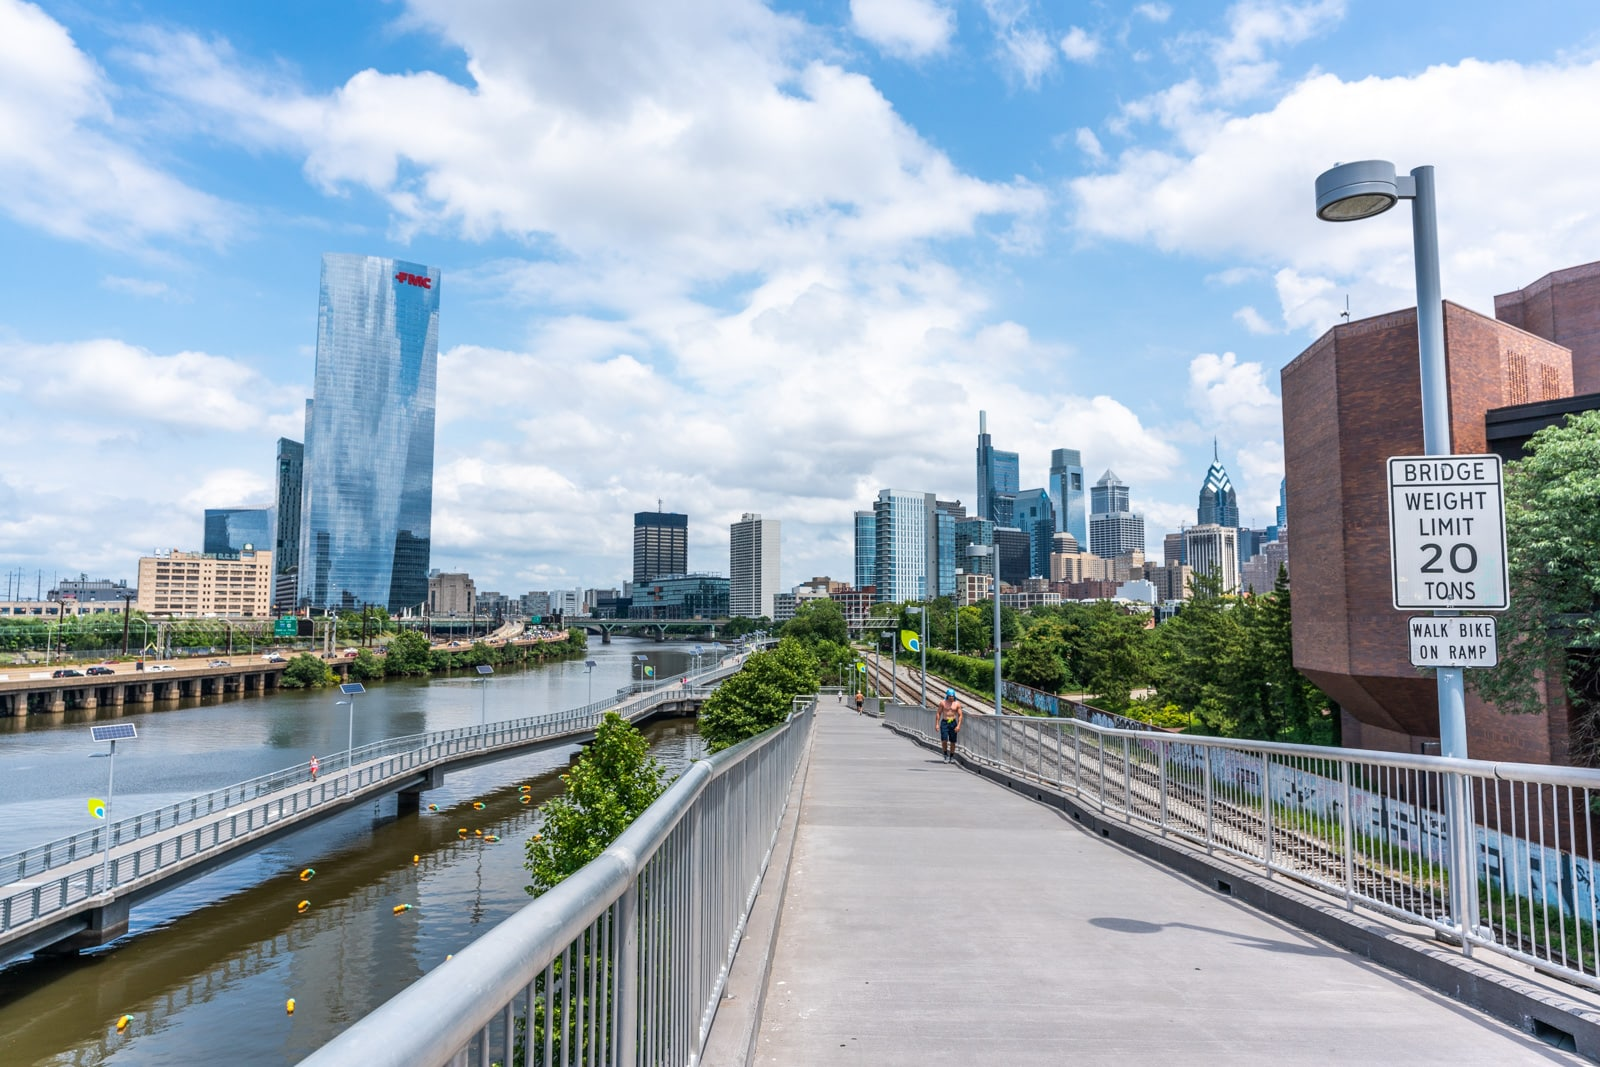 Reverse culture shock from long-term travel - Philadelphia River Walkway - Lost With Purpose travel blog